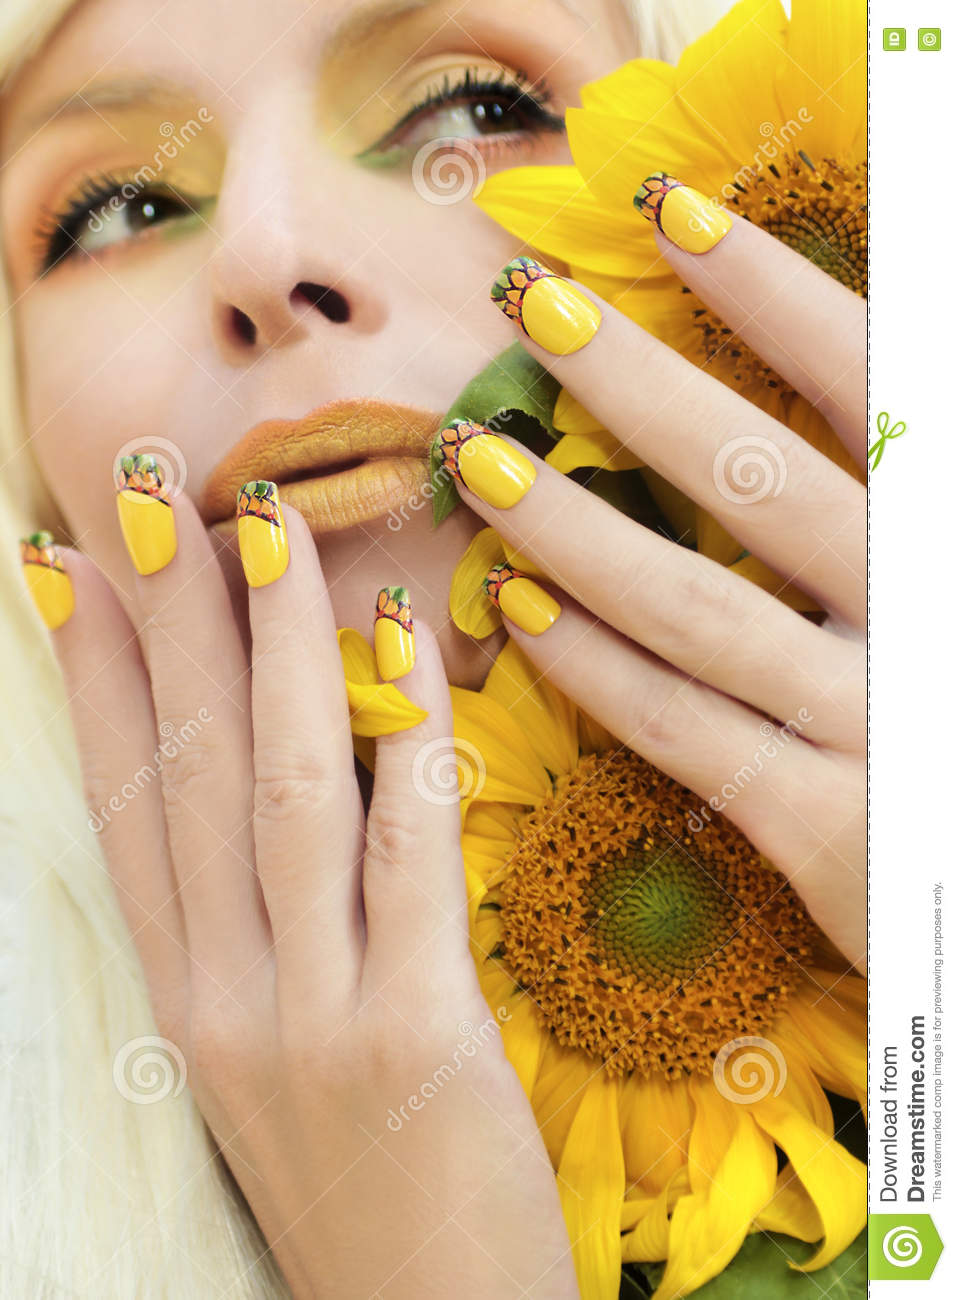 Sunflower Nail Design Stock Image Image Of French Backgrounds